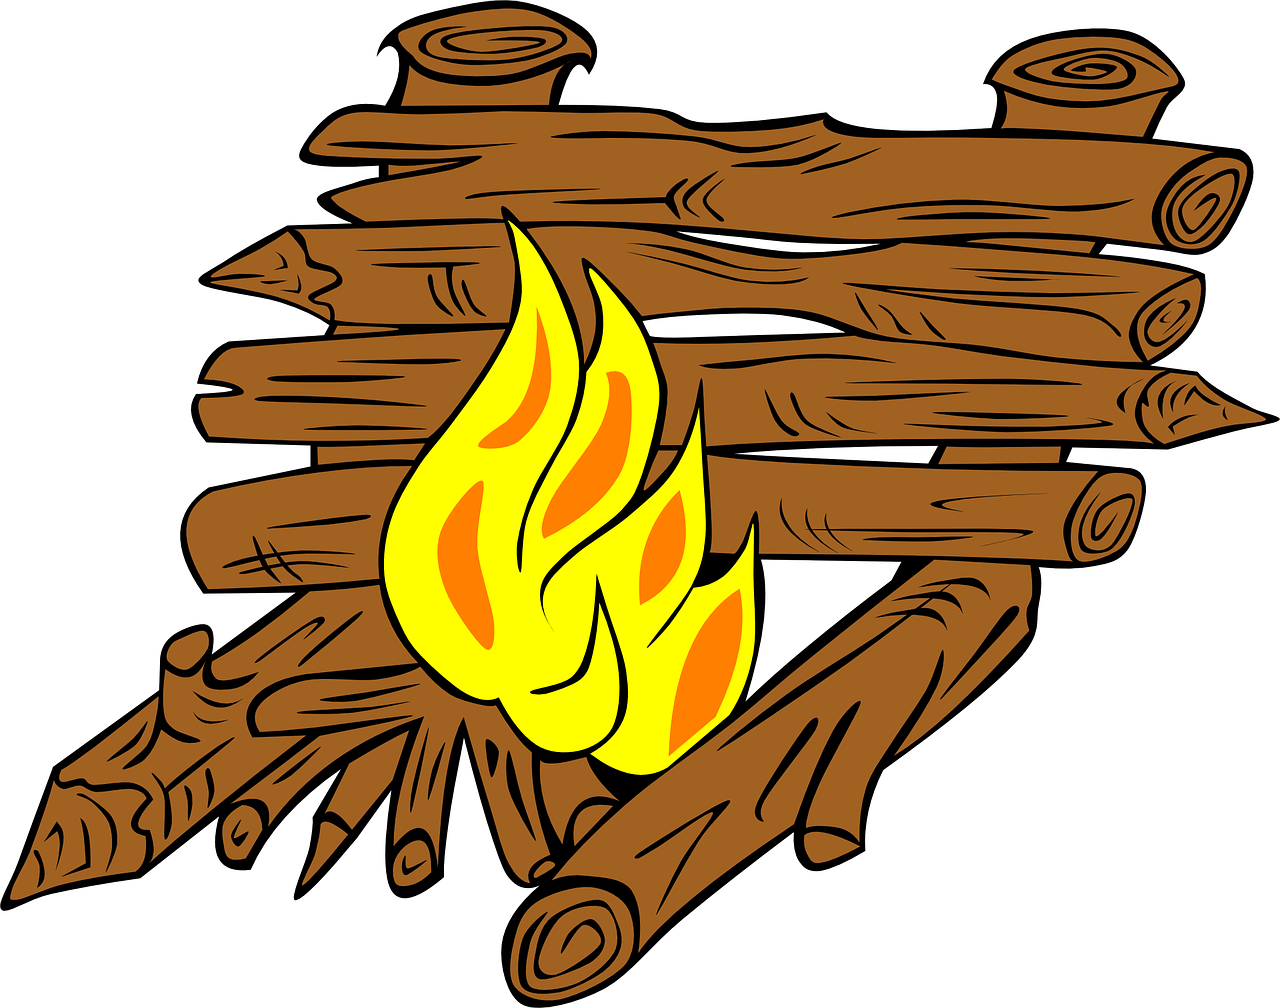 campfire,campfires,fire,outdoor fire,fire pit,cookout,camping,bonfire,firewood,free vector graphics,free pictures, free photos, free images, royalty free, free illustrations, public domain